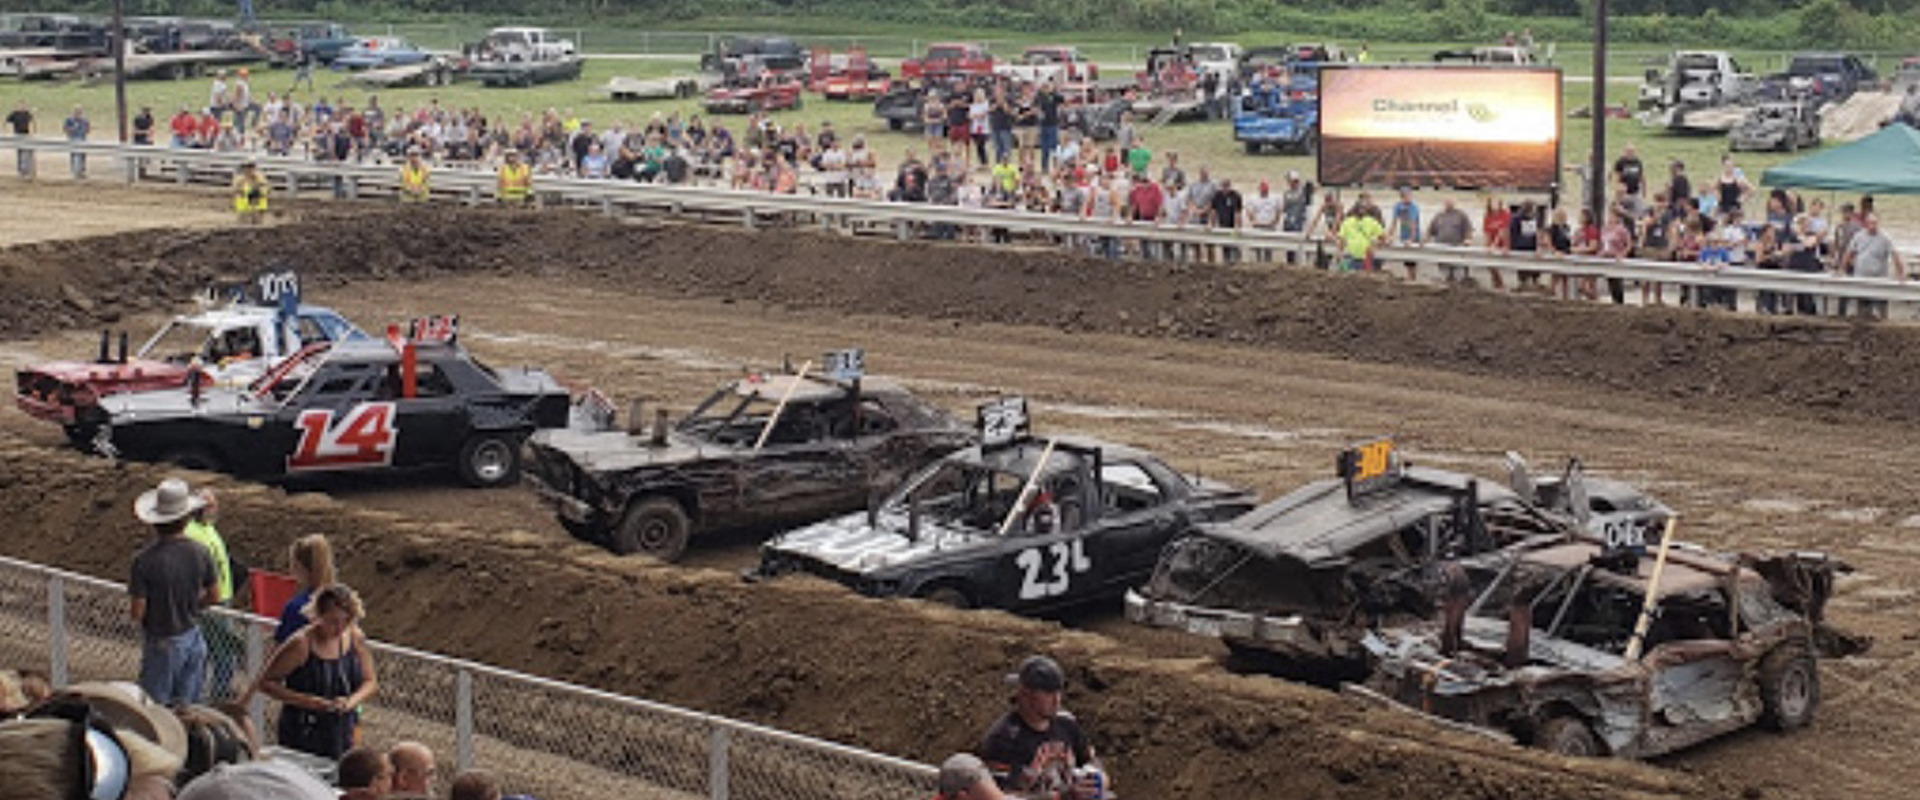 Sarpy County Fair Demolition Derby